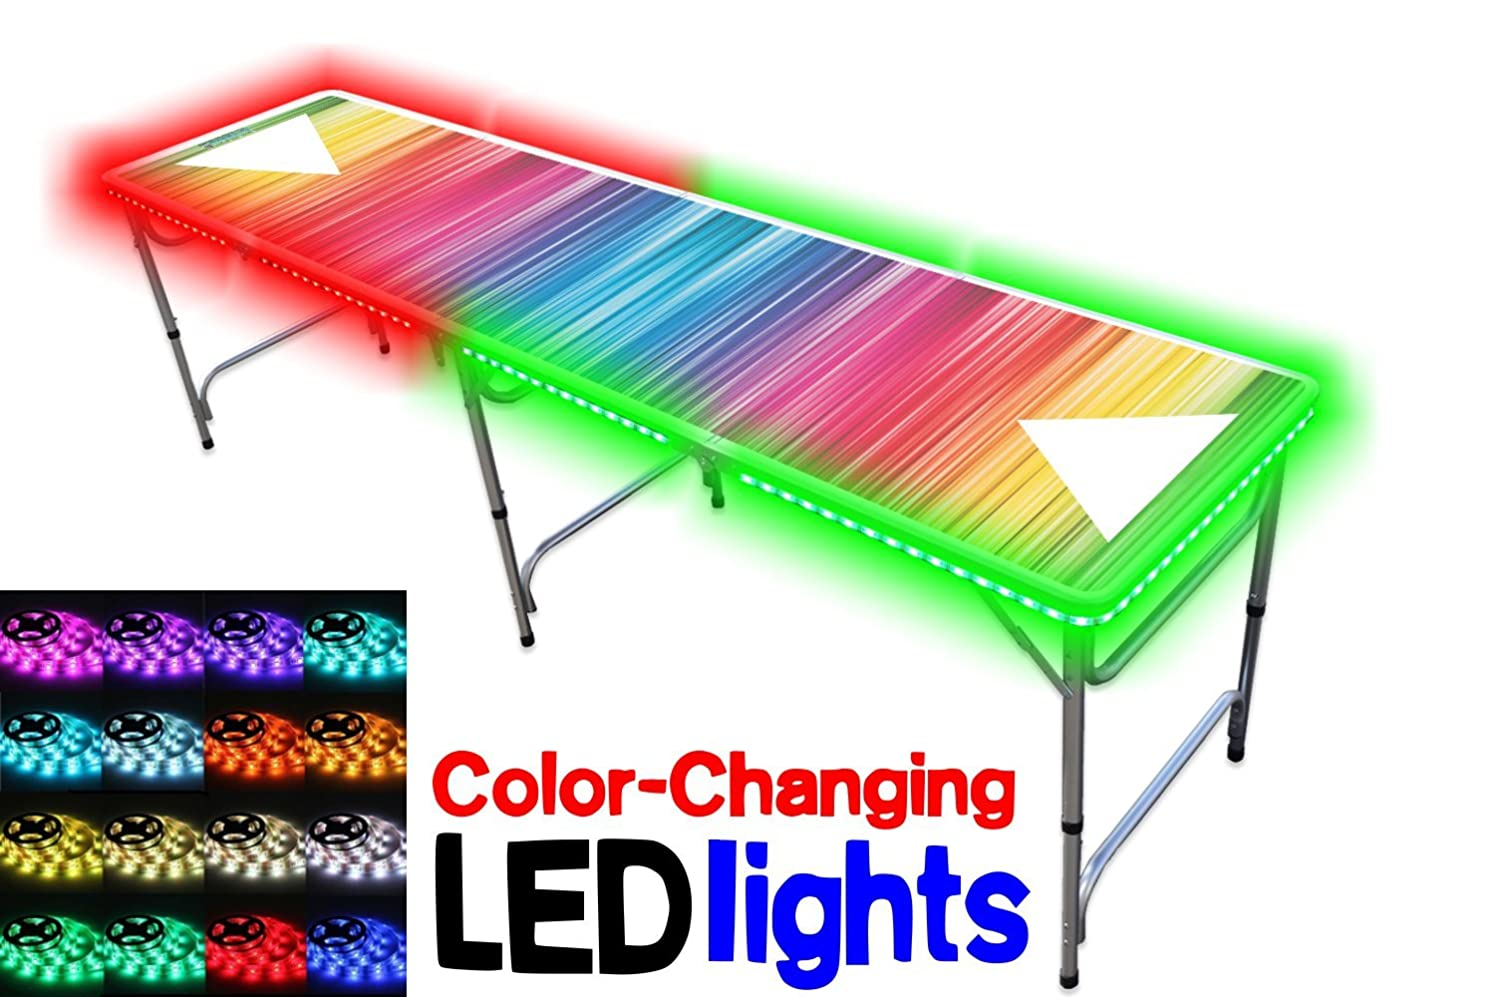 8-Foot Professional Beer Pong Table w/OPTIONAL Cup Holes & LED Glow Lights - Bubbles and Color Spectrum Editions PPT-082220181